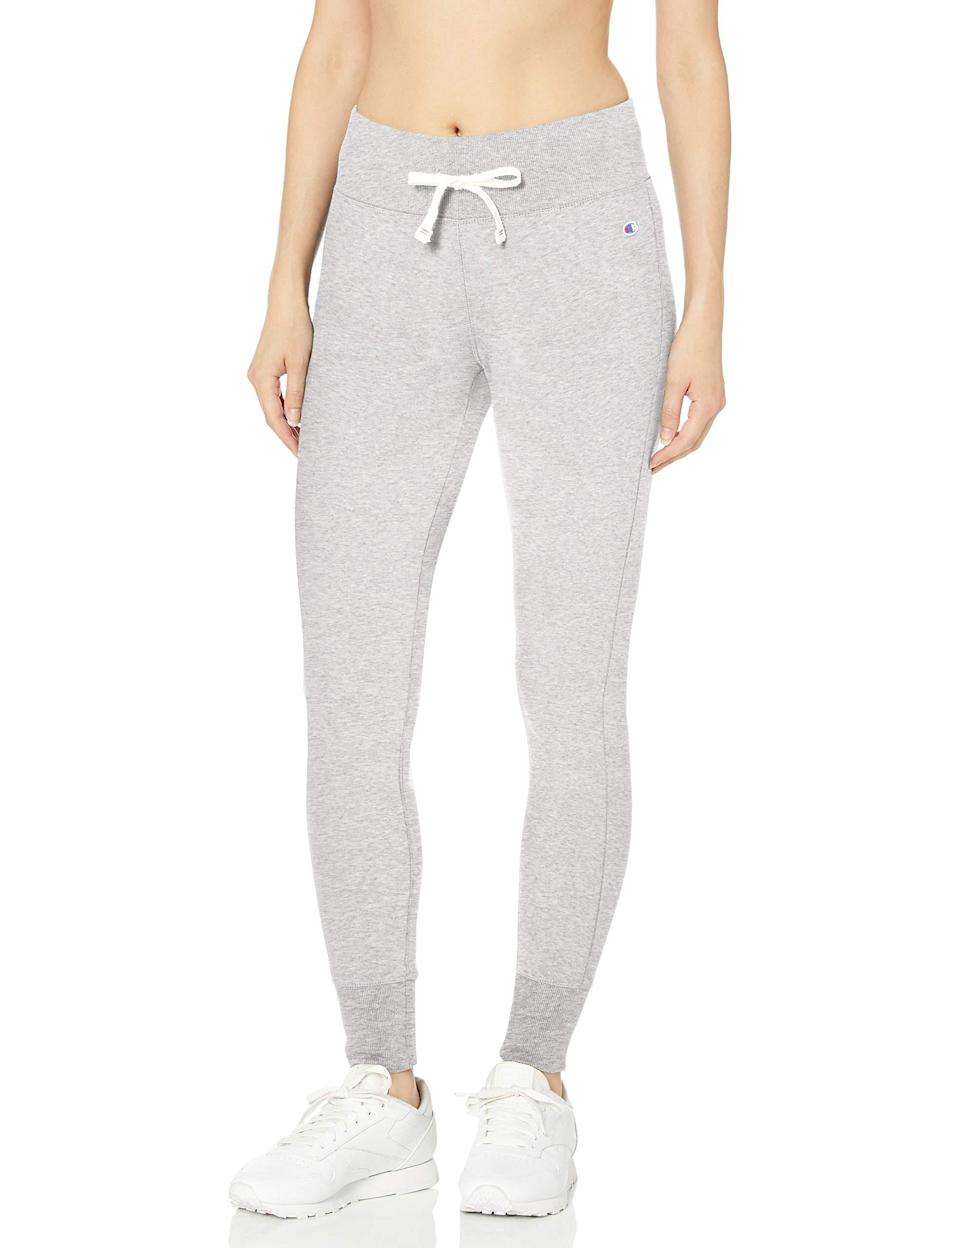 """<h3><a href=""""https://amzn.to/2QNNyVx"""" rel=""""nofollow noopener"""" target=""""_blank"""" data-ylk=""""slk:Champion Sweatpants"""" class=""""link rapid-noclick-resp"""">Champion Sweatpants</a></h3><br><strong>Patricia</strong><br><br><strong>How She Discovered It:</strong> """"I was searching for Champion sweats and found just what I wanted on Amazon."""" <br><br><strong>Why It's A Hidden Gem:</strong> """"No store has them — they've been discontinued everywhere but Amazon!""""<br><br><strong>Champion</strong> Women's Heritage Jogger Tight, $, available at <a href=""""https://amzn.to/2QNNyVx"""" rel=""""nofollow noopener"""" target=""""_blank"""" data-ylk=""""slk:Amazon"""" class=""""link rapid-noclick-resp"""">Amazon</a>"""